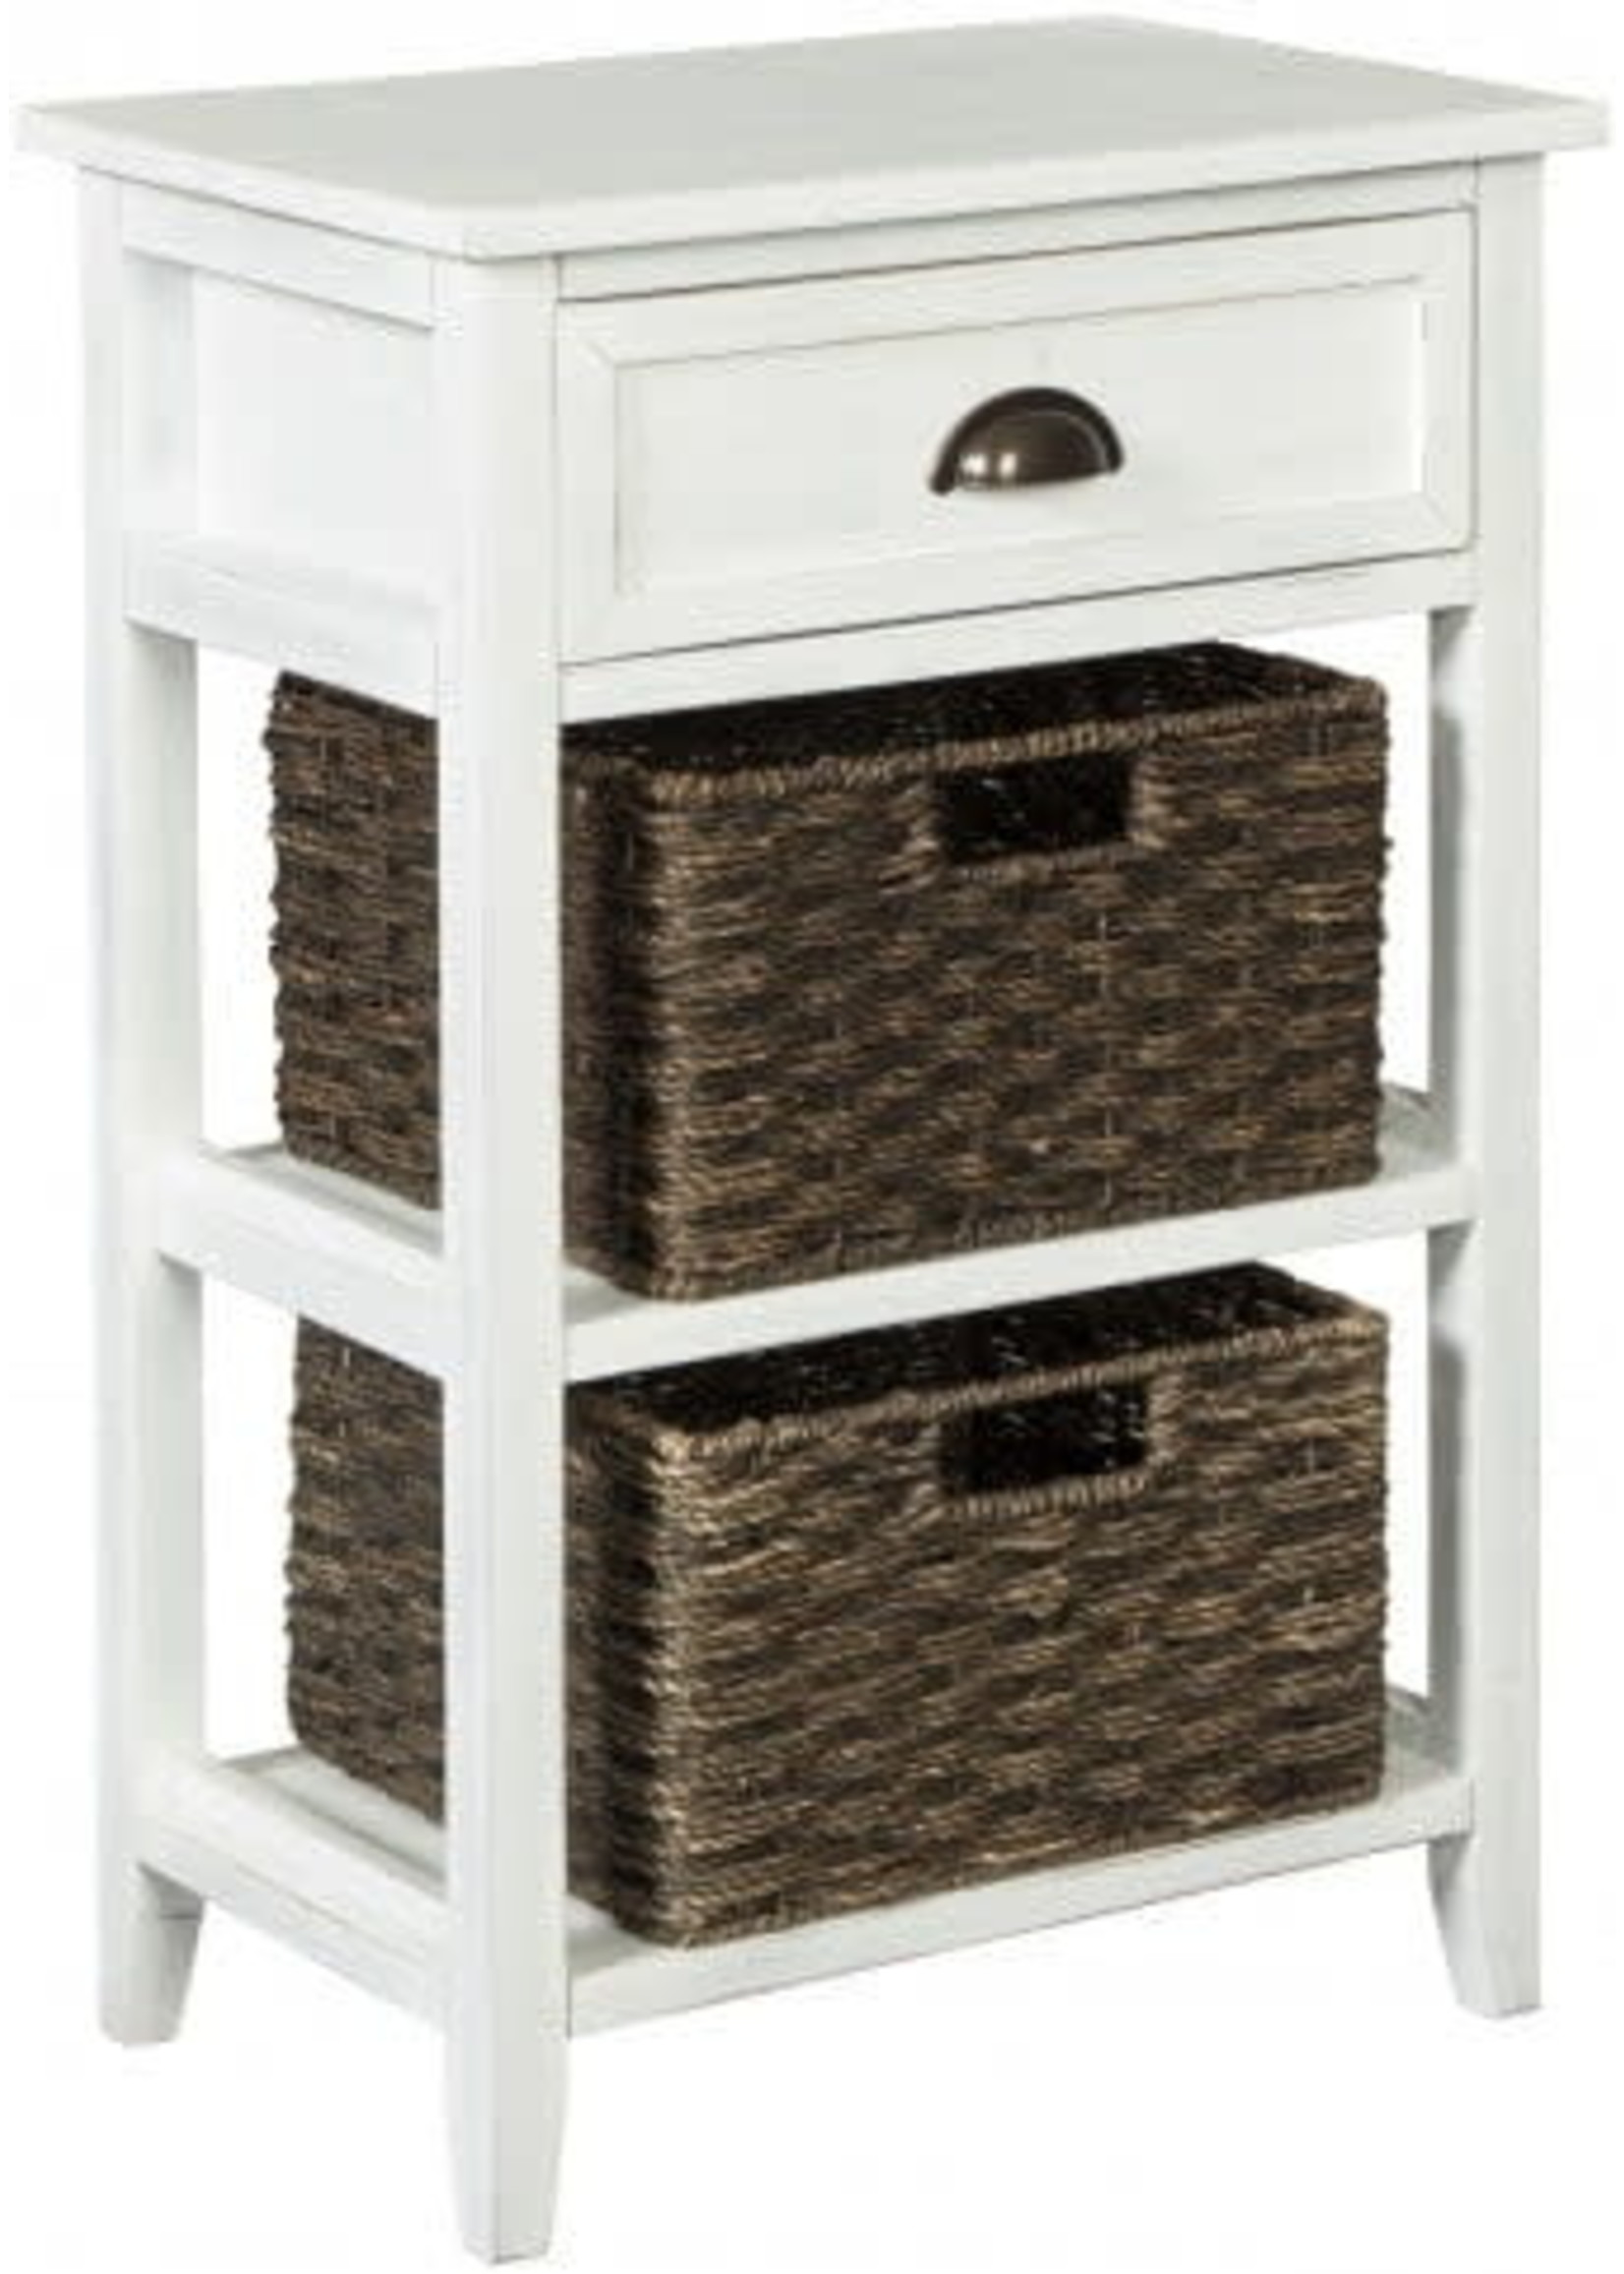 ASHLEY A4000137 ACCENT TABLE 1DR OSLEMBER WHITE